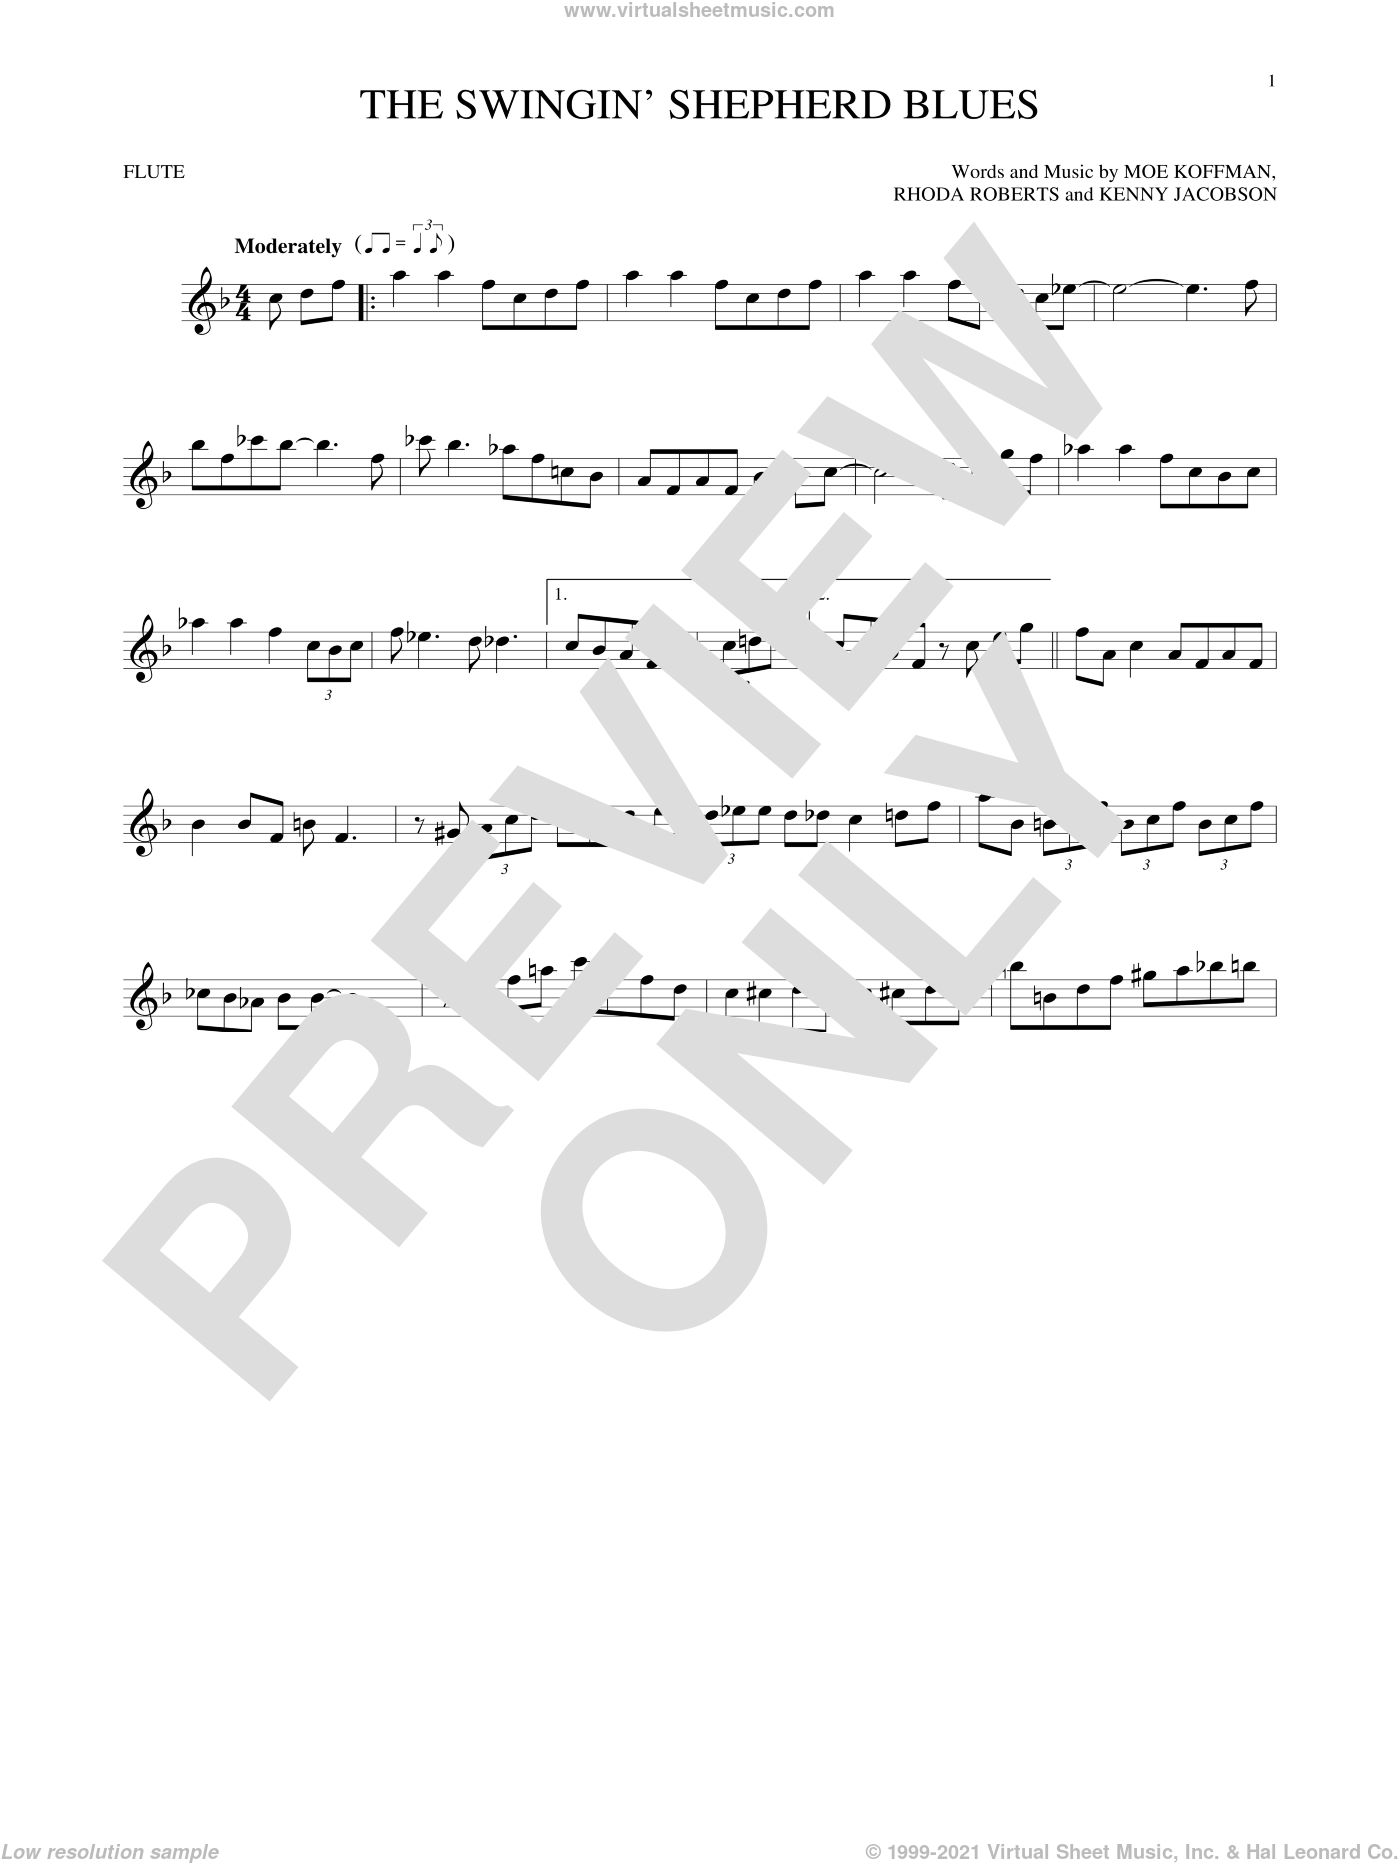 The Swingin' Shepherd Blues sheet music for flute solo by Moe Koffman, Kenny Jacobson and Rhoda Roberts, intermediate skill level